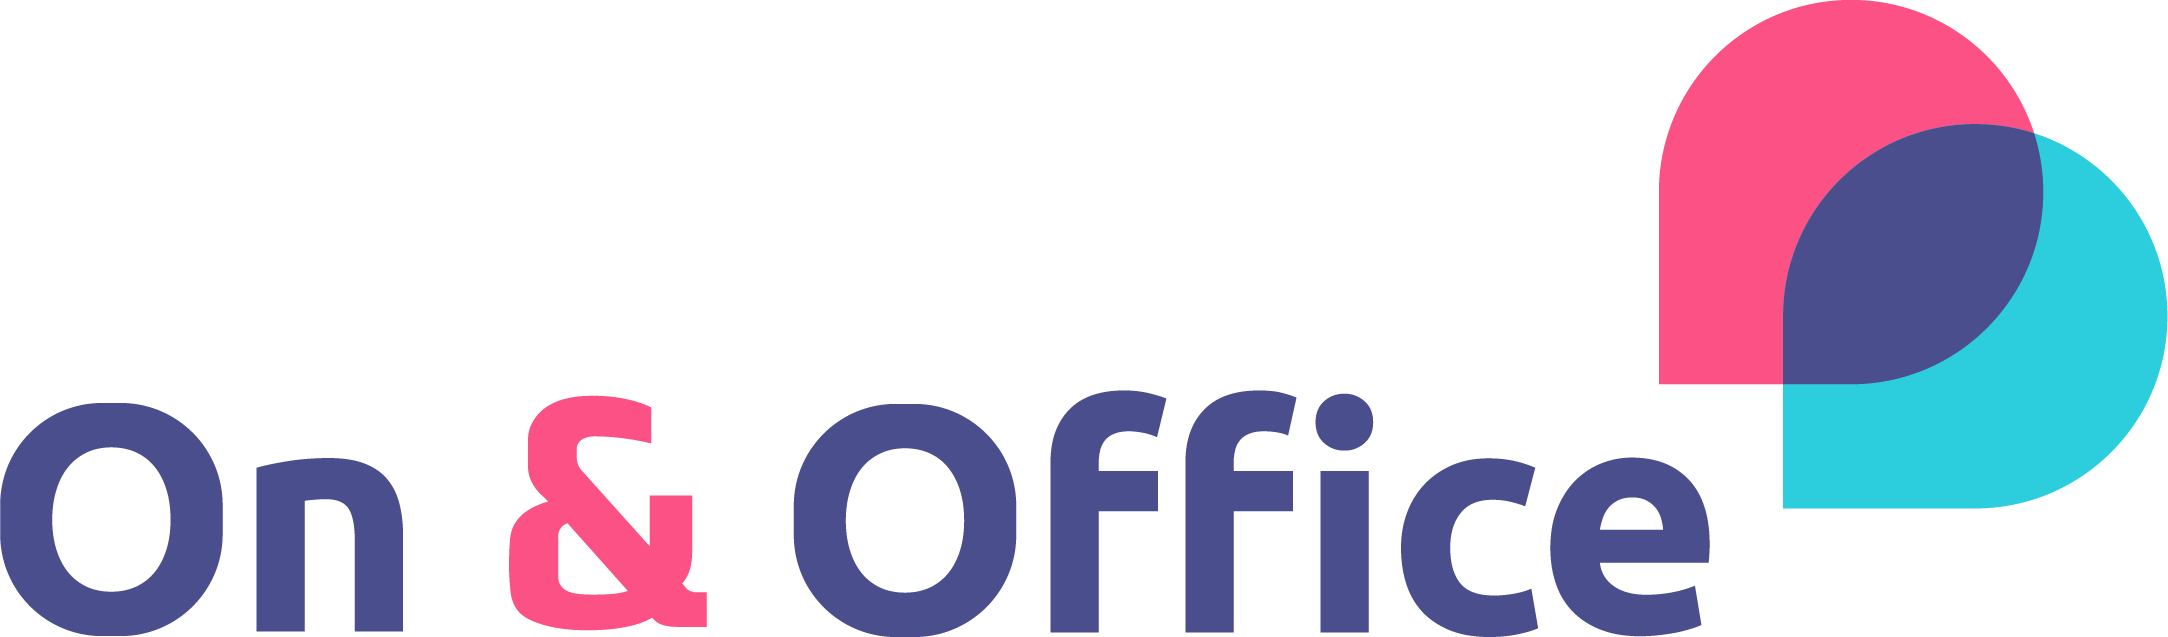 Platform to put in contact businesses looking to share an office